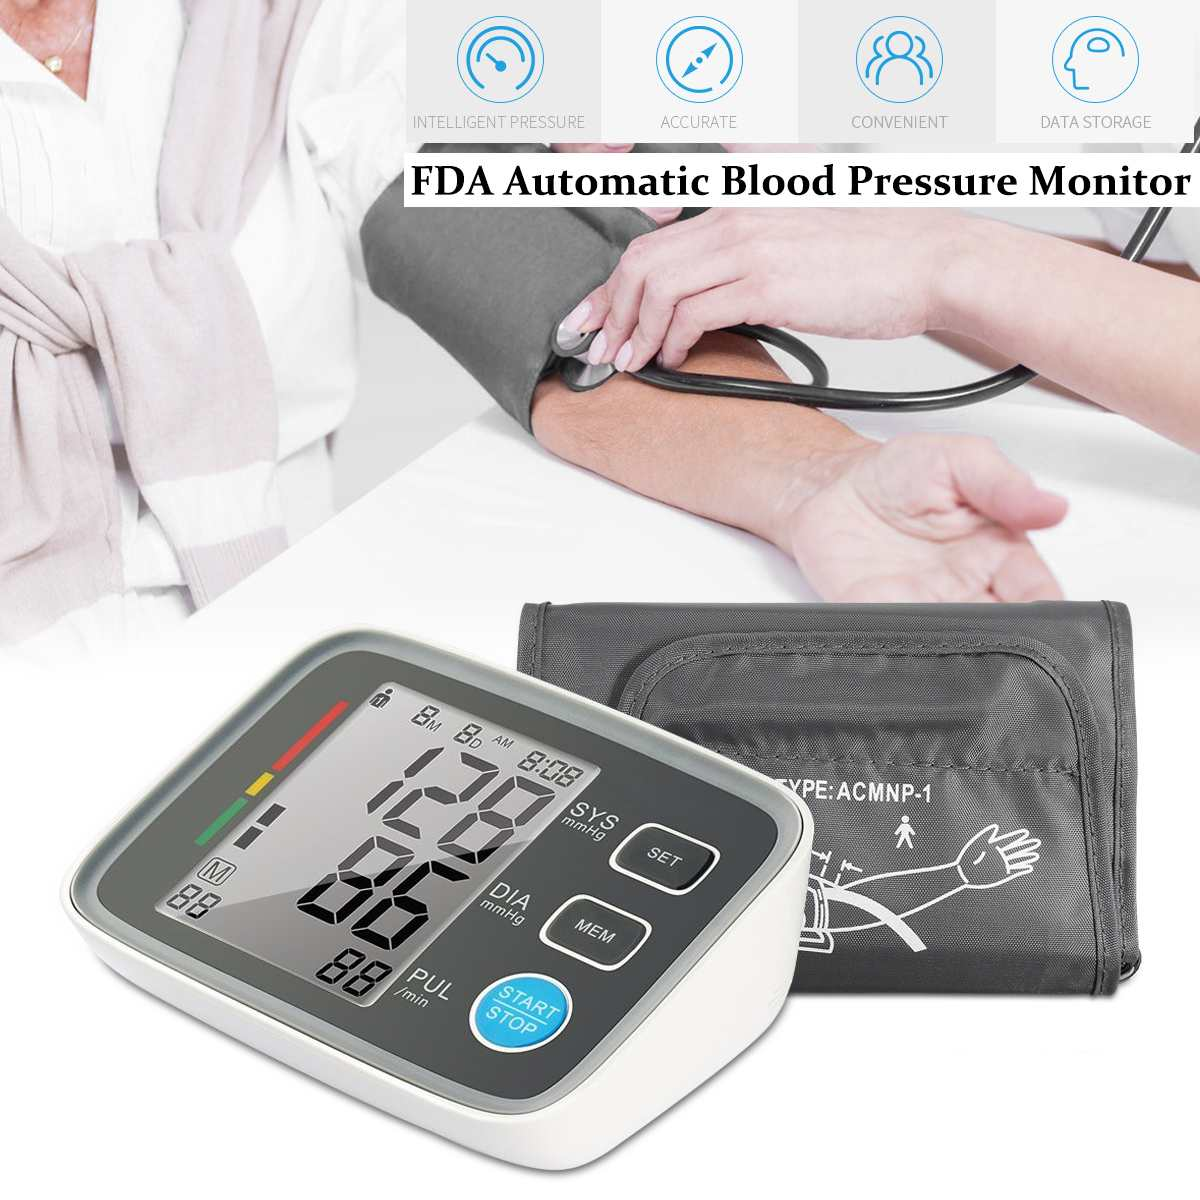 Digital LCD Blood Pressure Monitor Heart Beat Meter Machine Large Screen Automatic Sphygmomanometer Tonometer Health CareDigital LCD Blood Pressure Monitor Heart Beat Meter Machine Large Screen Automatic Sphygmomanometer Tonometer Health Care